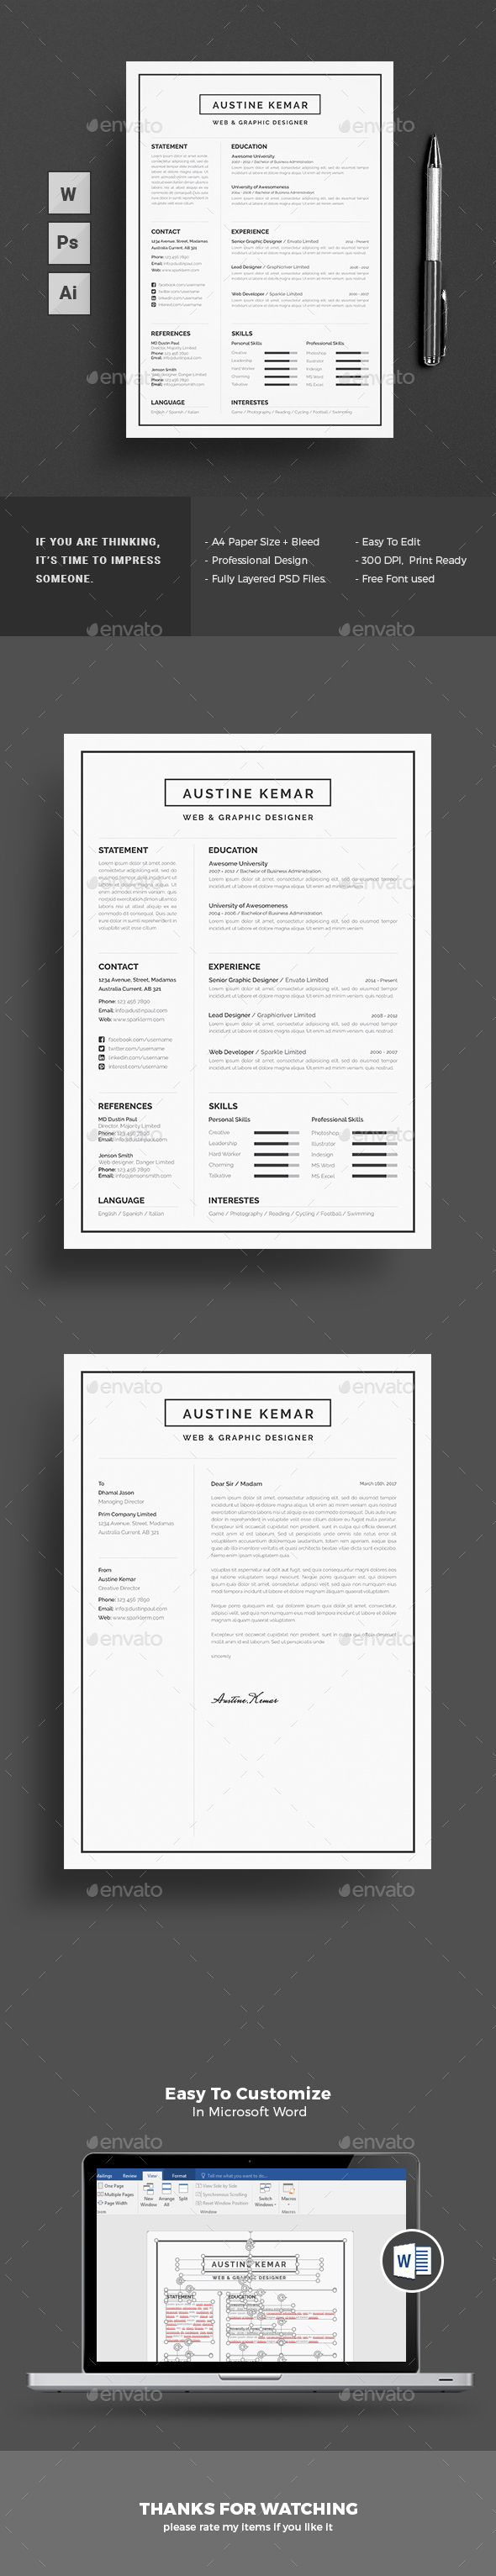 Resume 100 best CV images on Pinterest